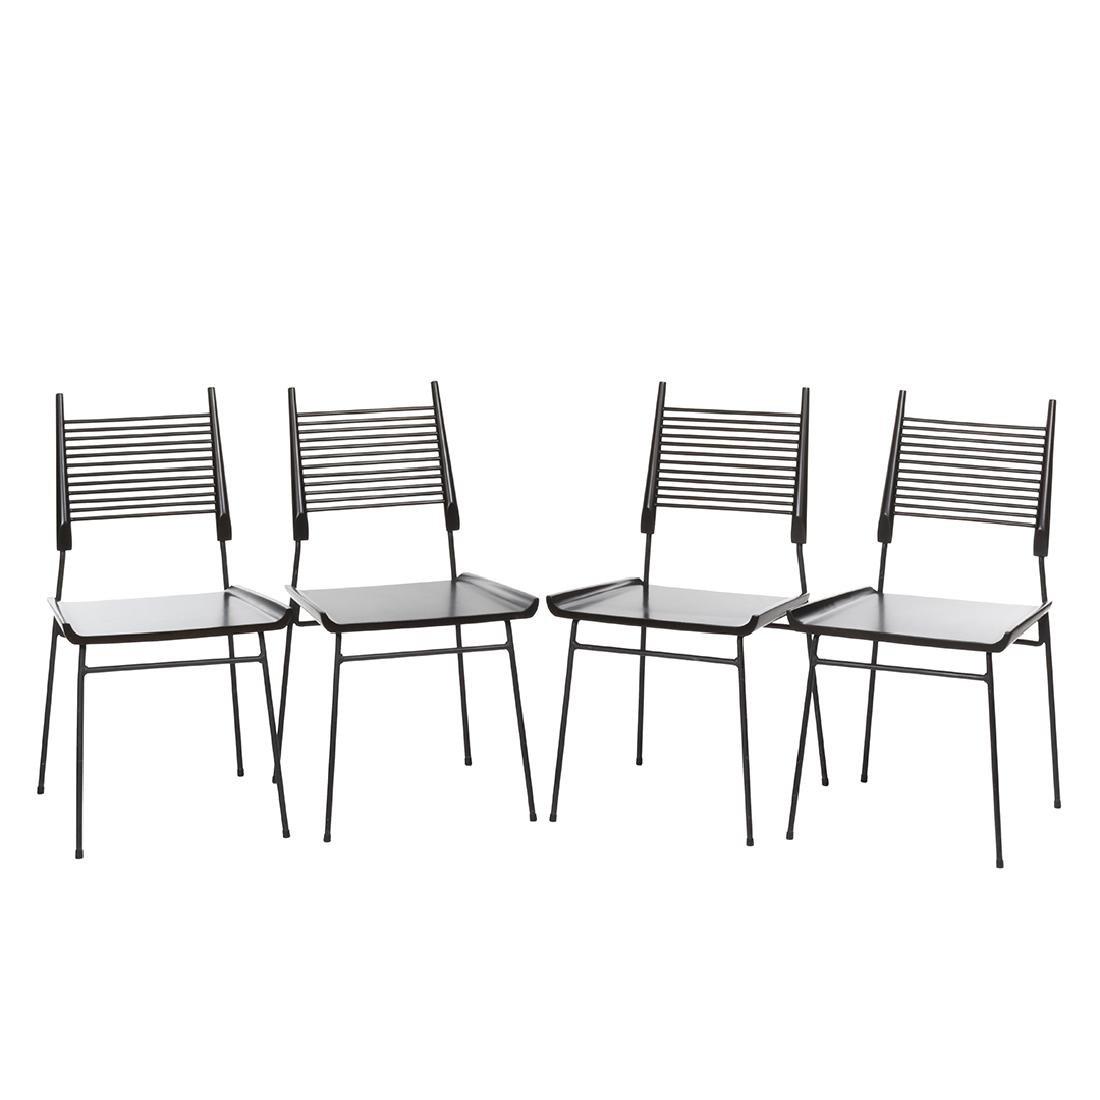 Paul McCobb Shovel Chairs (4)